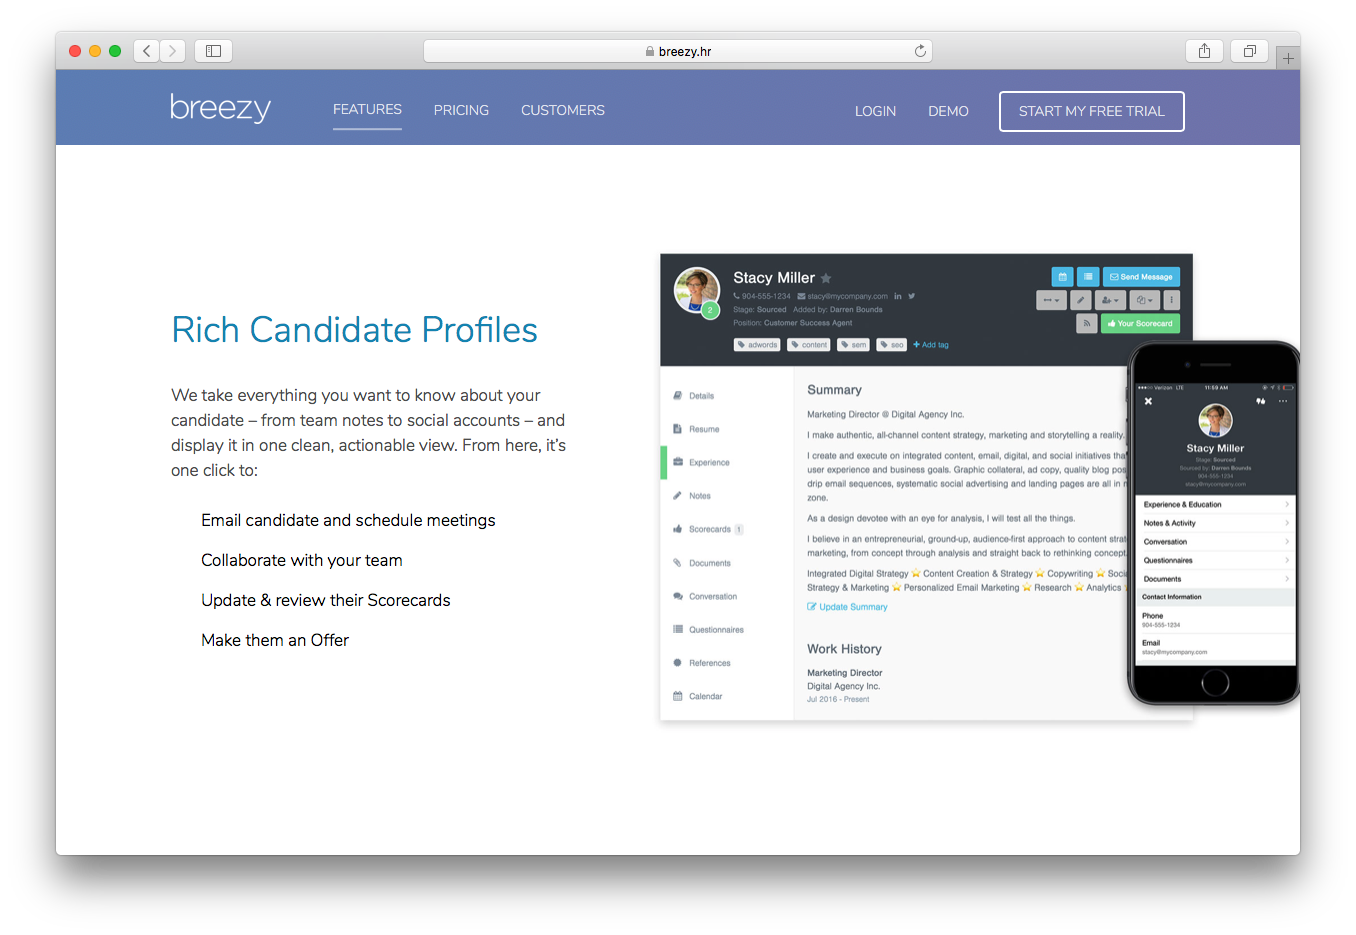 BreezyHR candidate management profiles email schedule meetings collaborate team update review scorecards make offer